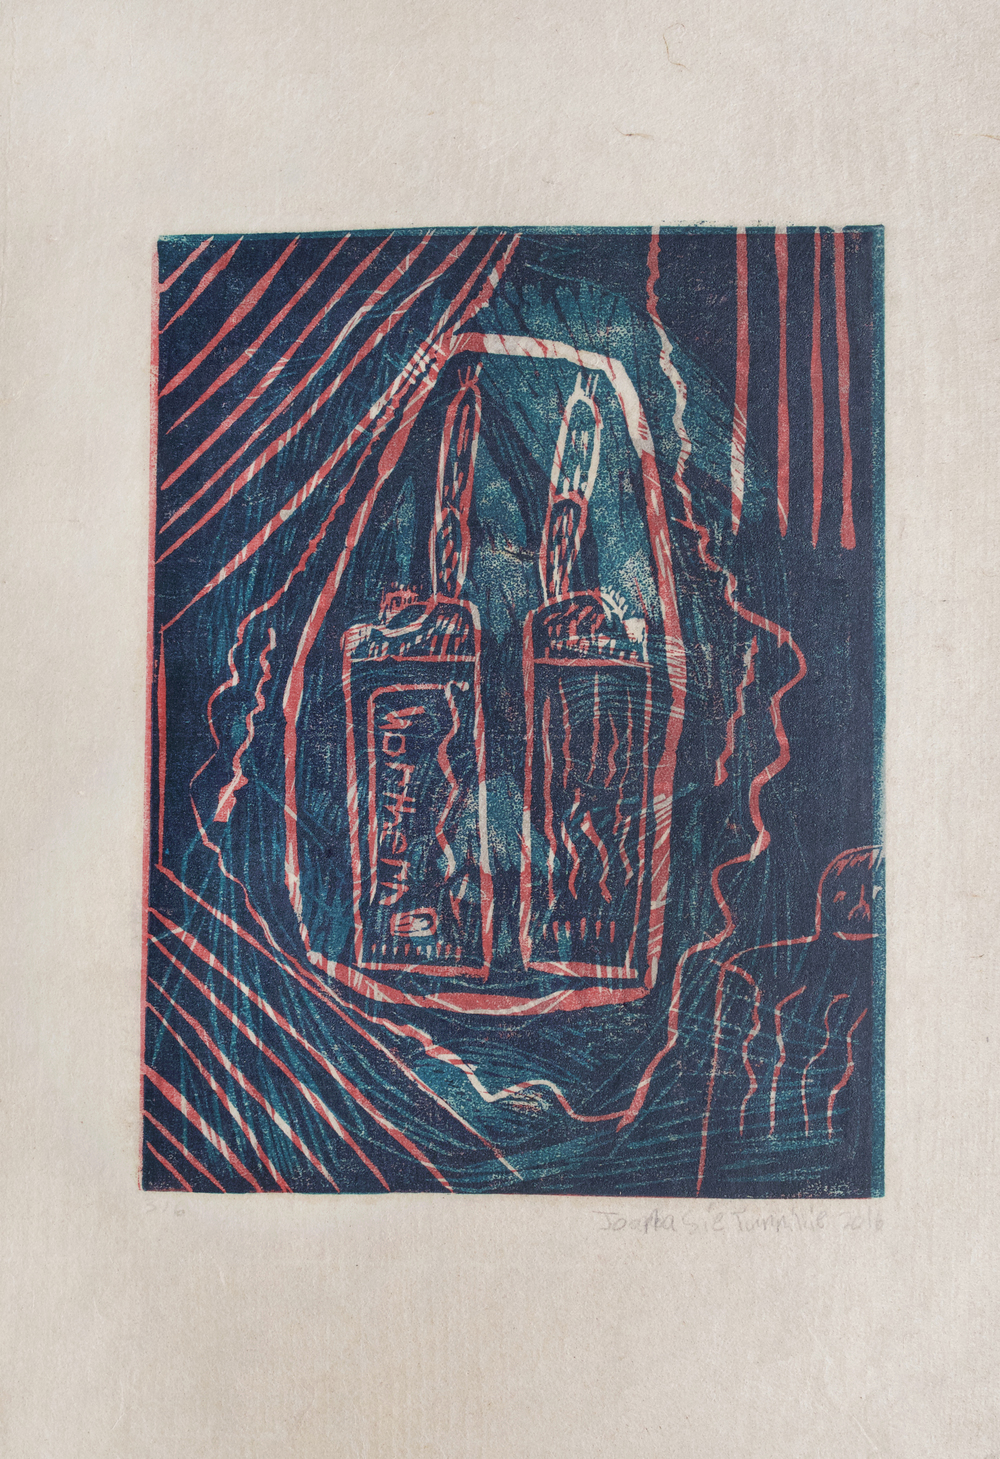 Lighters   Joanasie Tunnillie  Two-Layer Linocut on Washi  15.5 x 21.5""